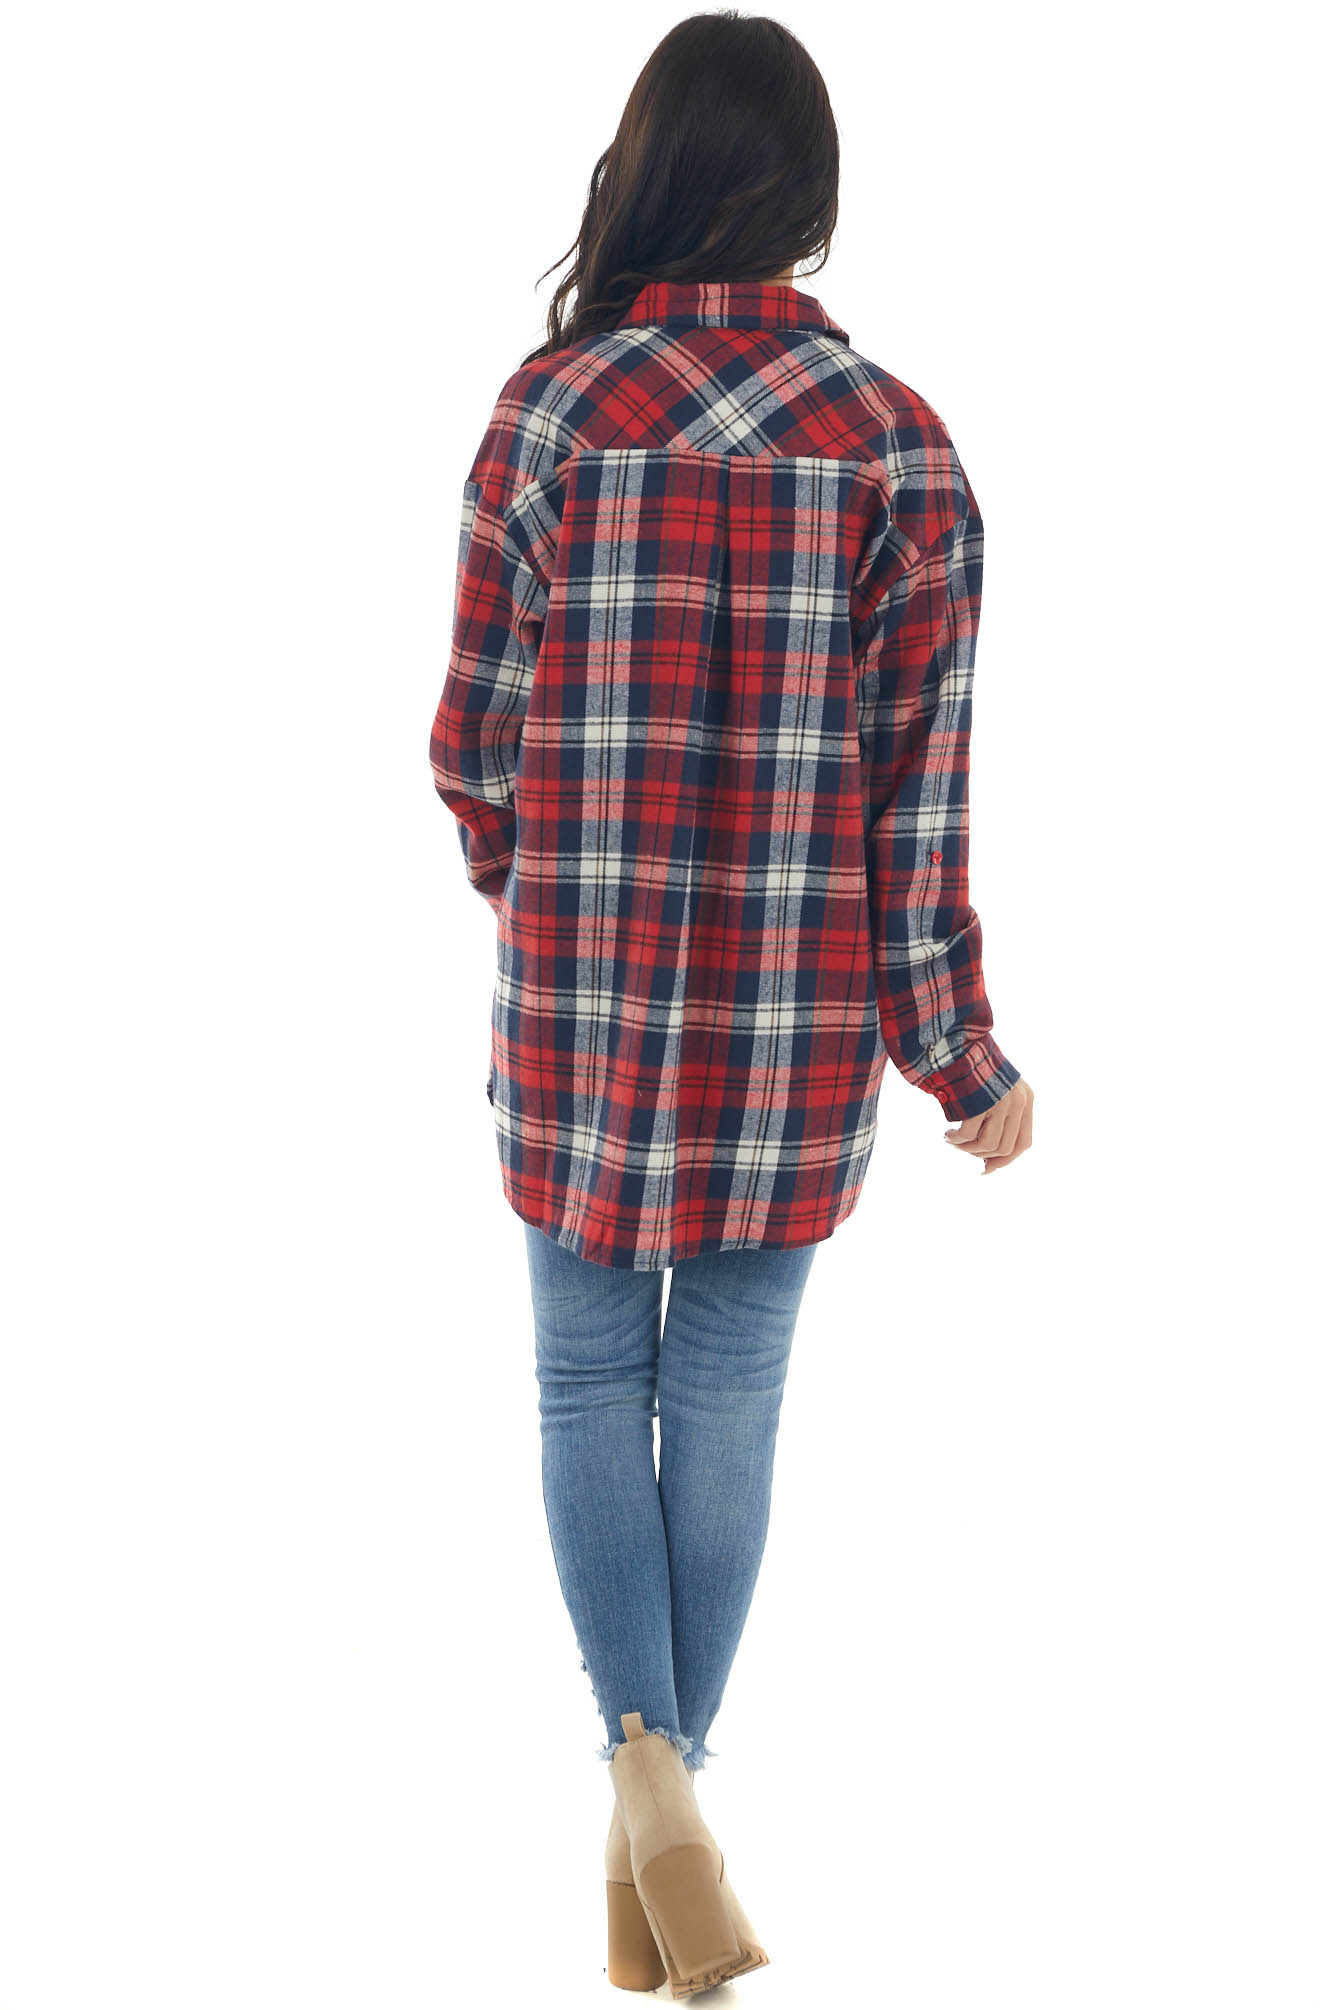 Crimson and Navy Plaid Chest Pocket Flannel